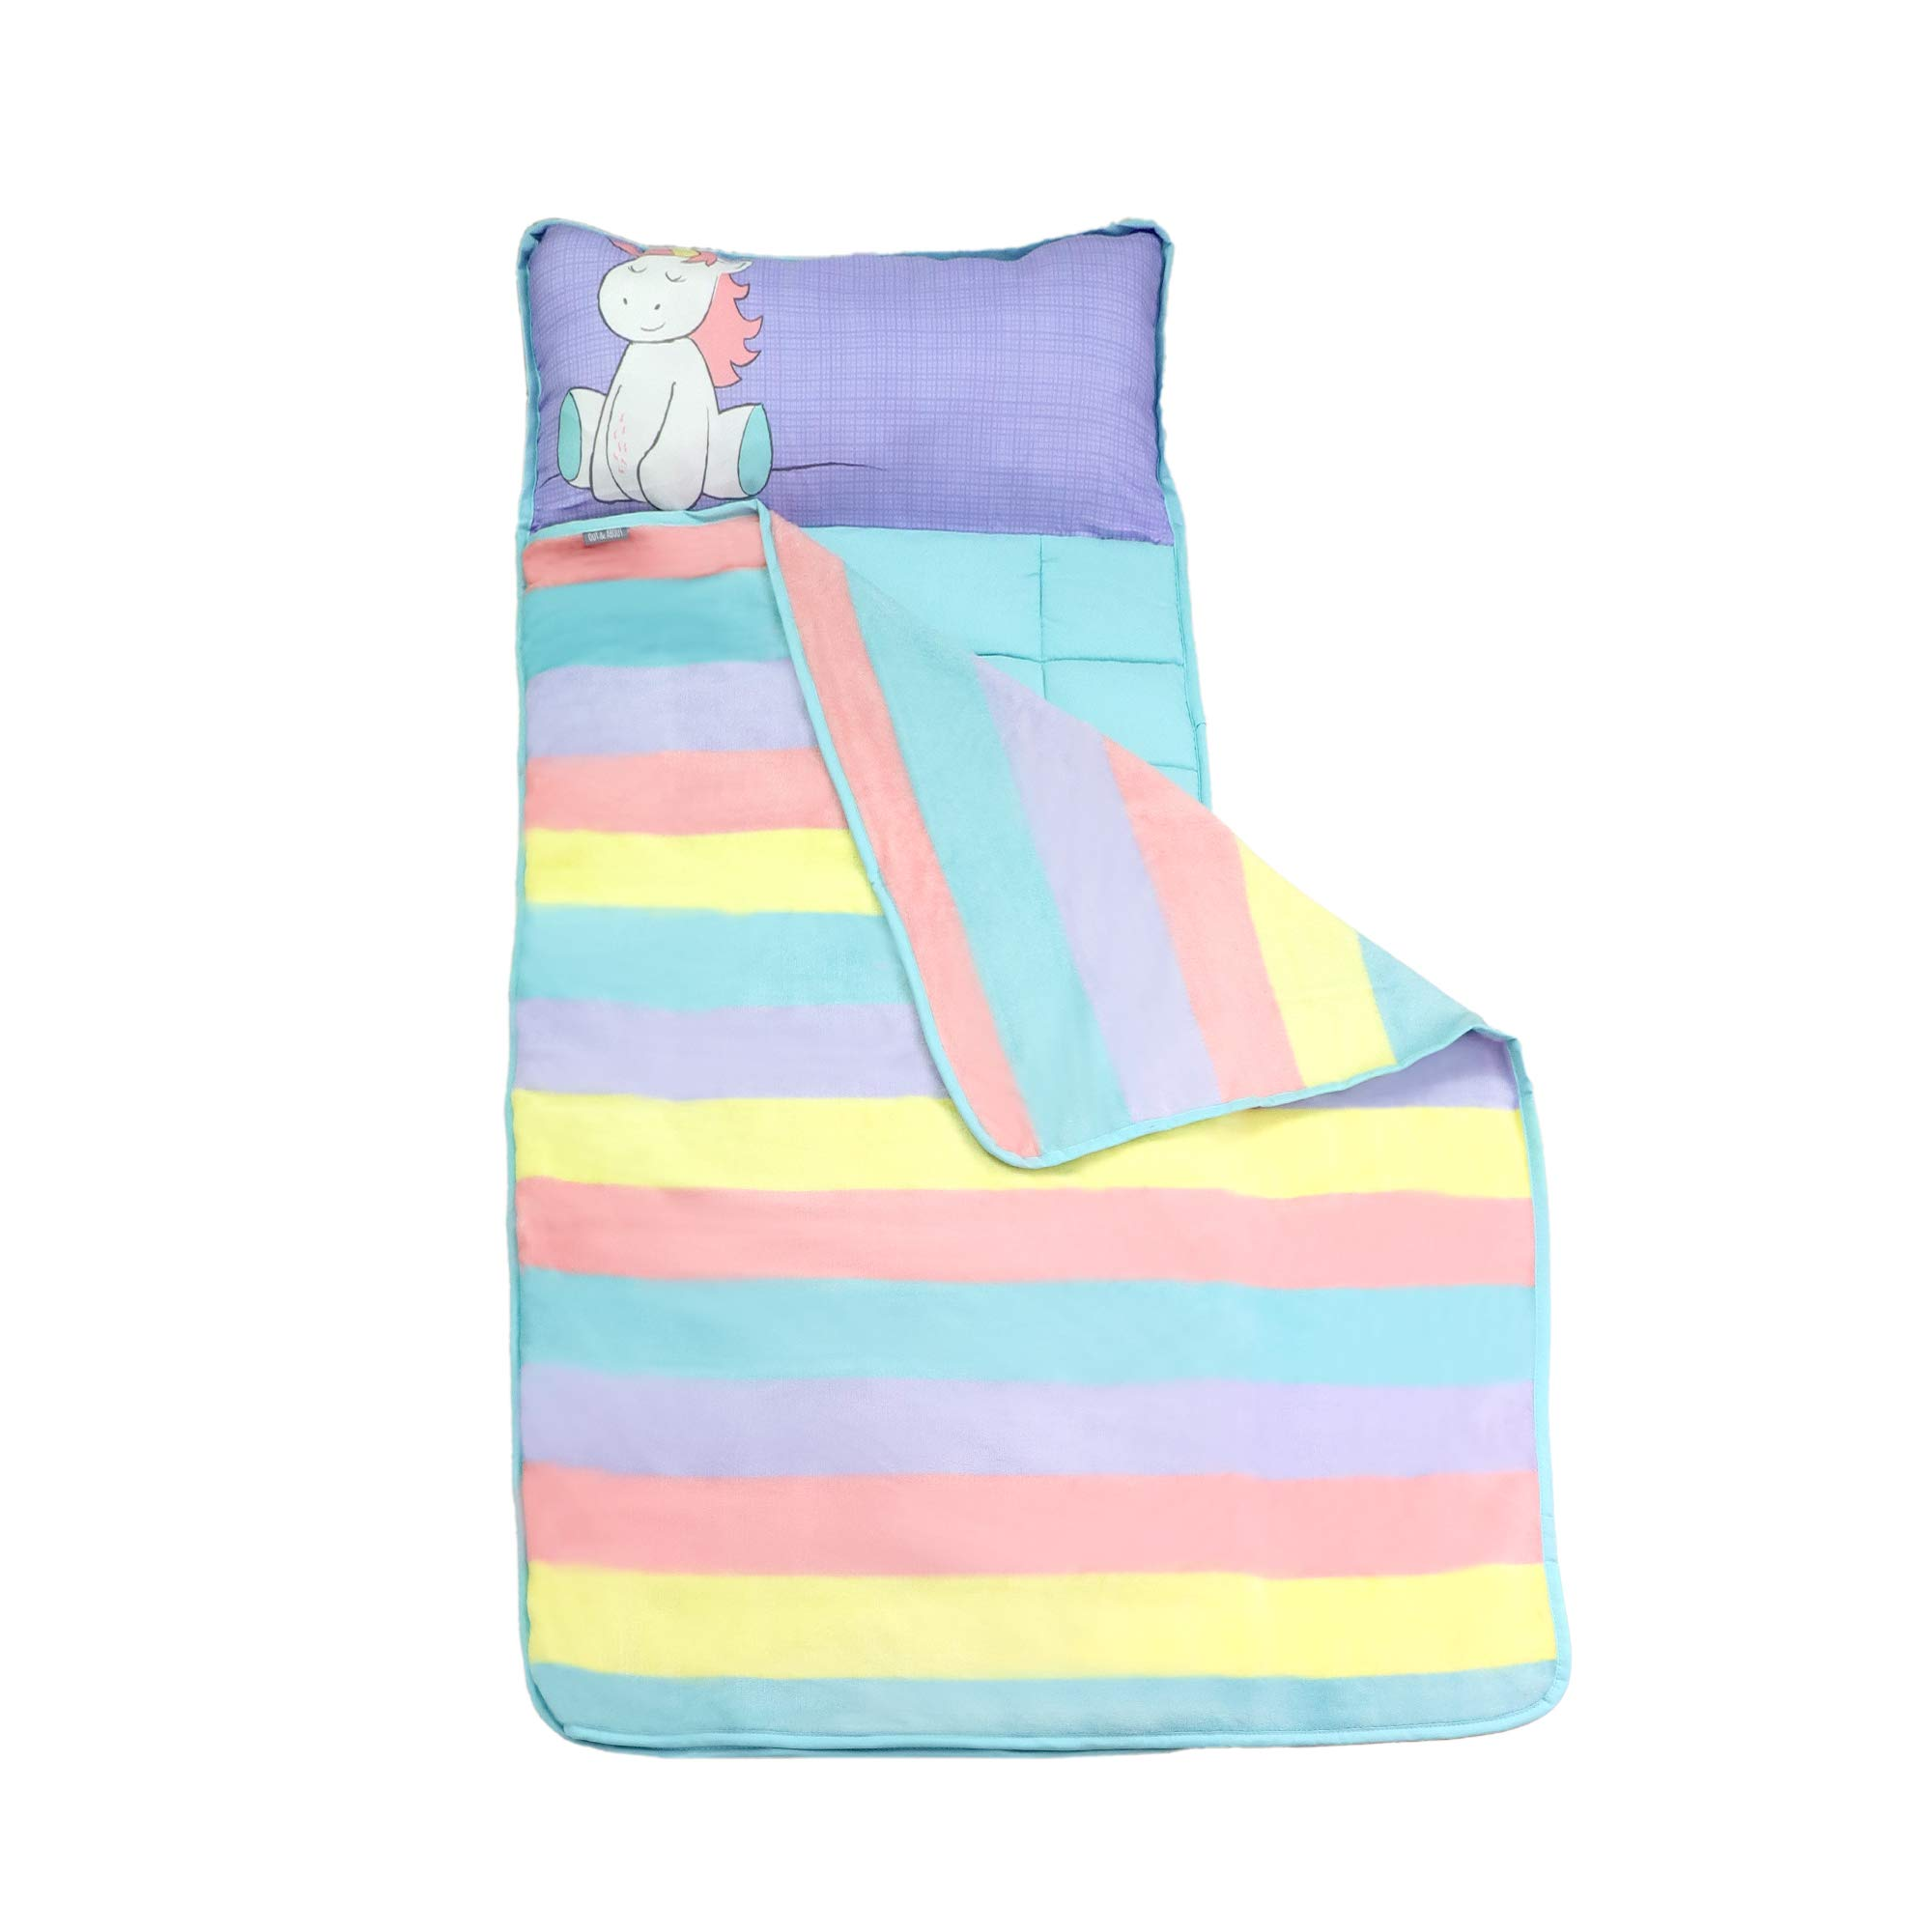 Toddler Nap Mats for Preschool Kinder Daycare - Blanket + Pillow for Boys or Girls - Foldable Comfy Cover (Unicorn) by Homezy